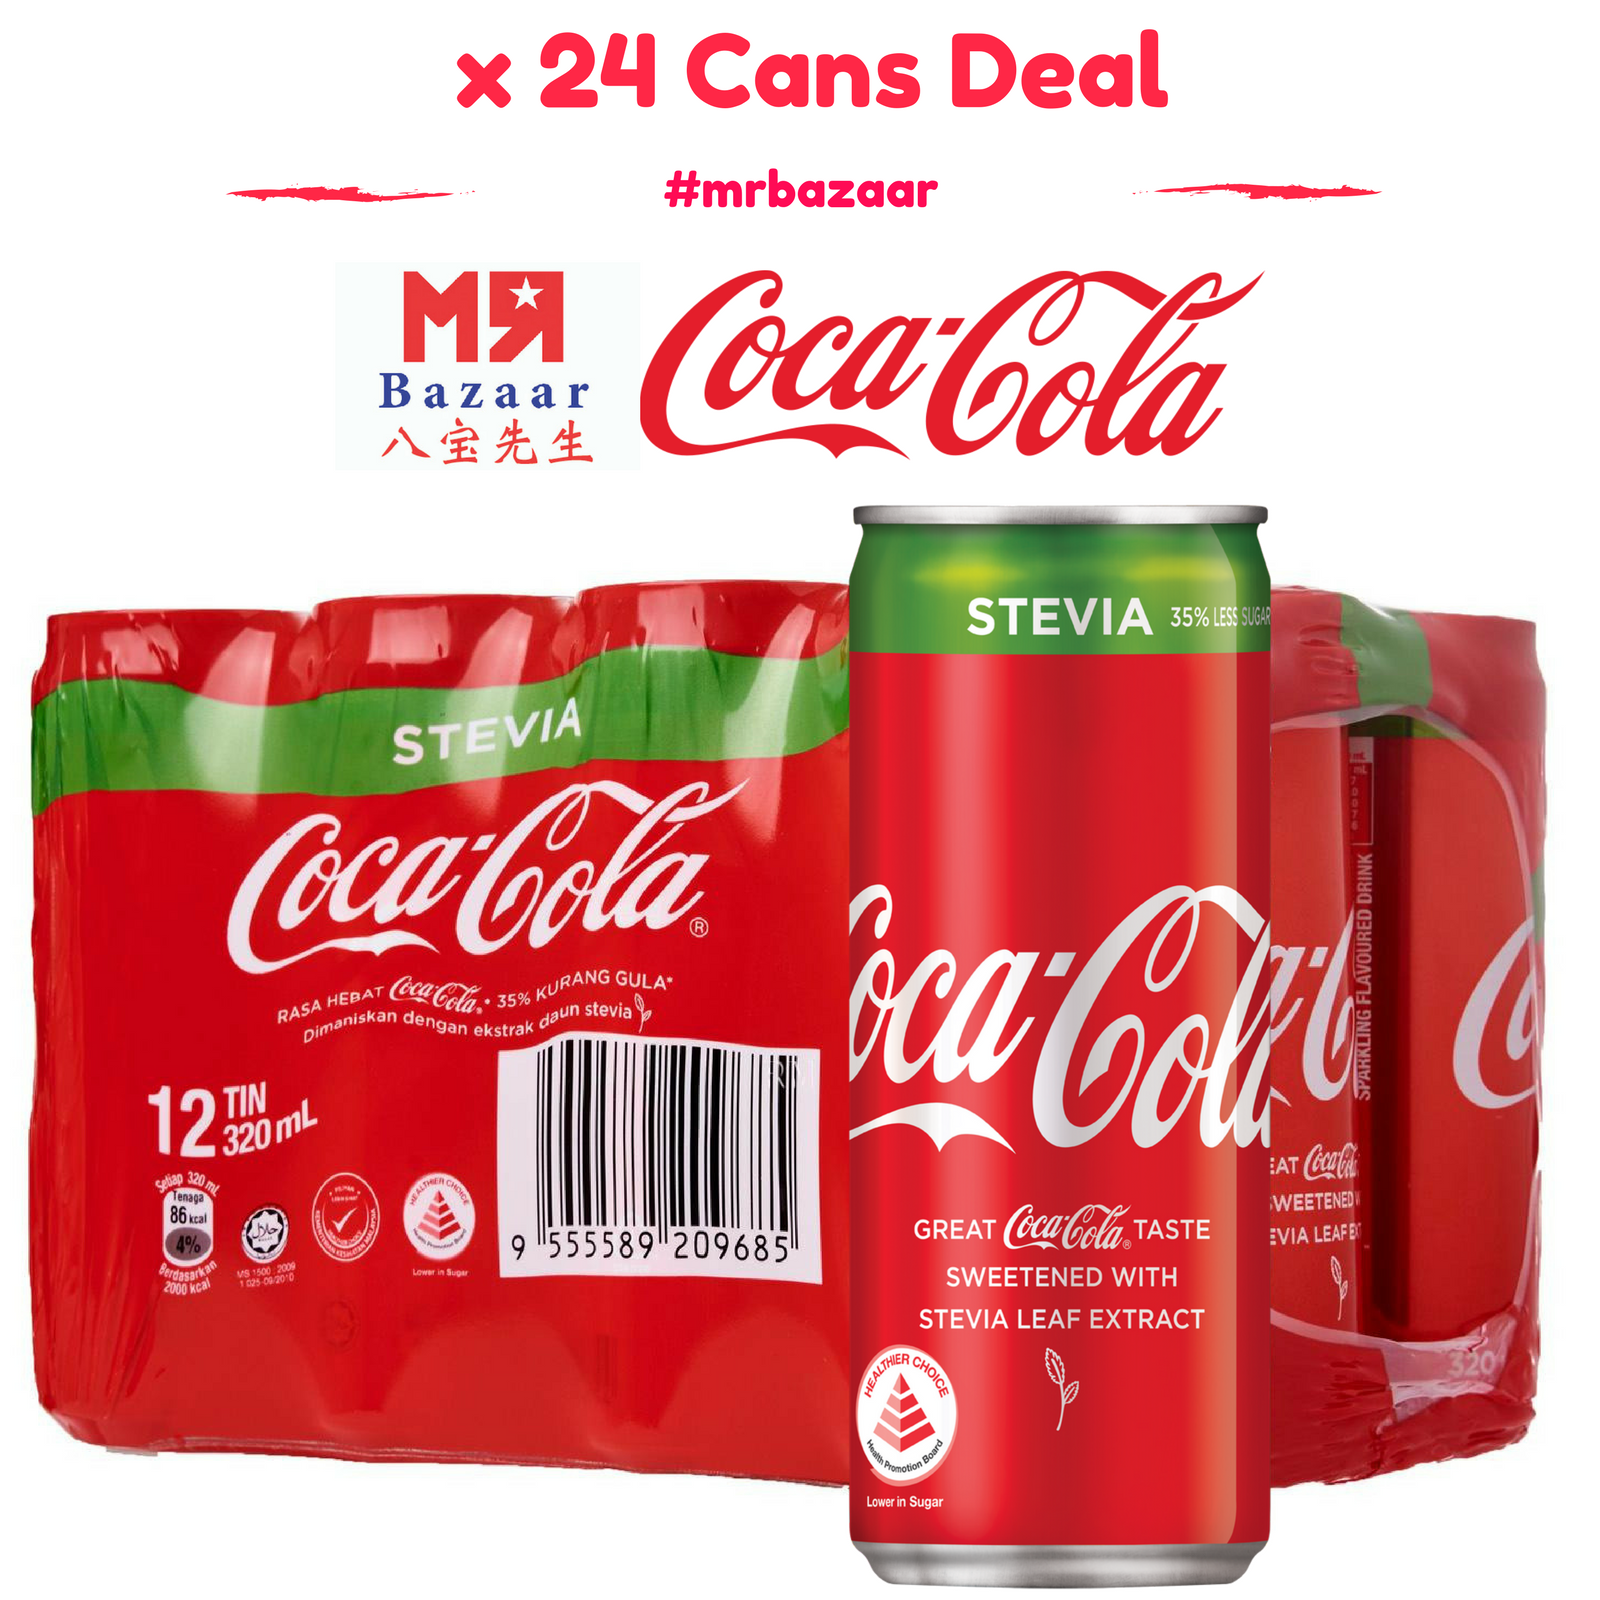 Stevia Coke Coca Cola x 24 Cans (320ml) 35% Less Sugar